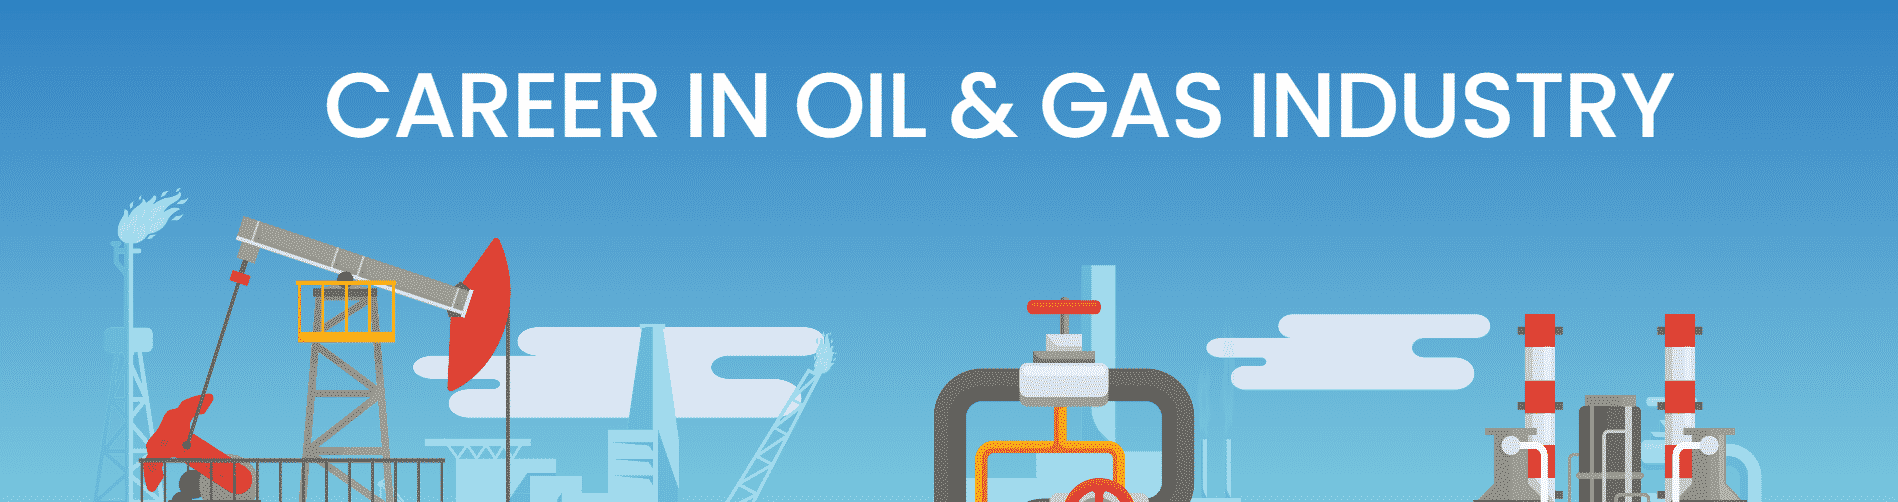 Career in Oil and Gas Industry-Oil and Gas Piping QA/QC NDT Online Training course-SMEClabs